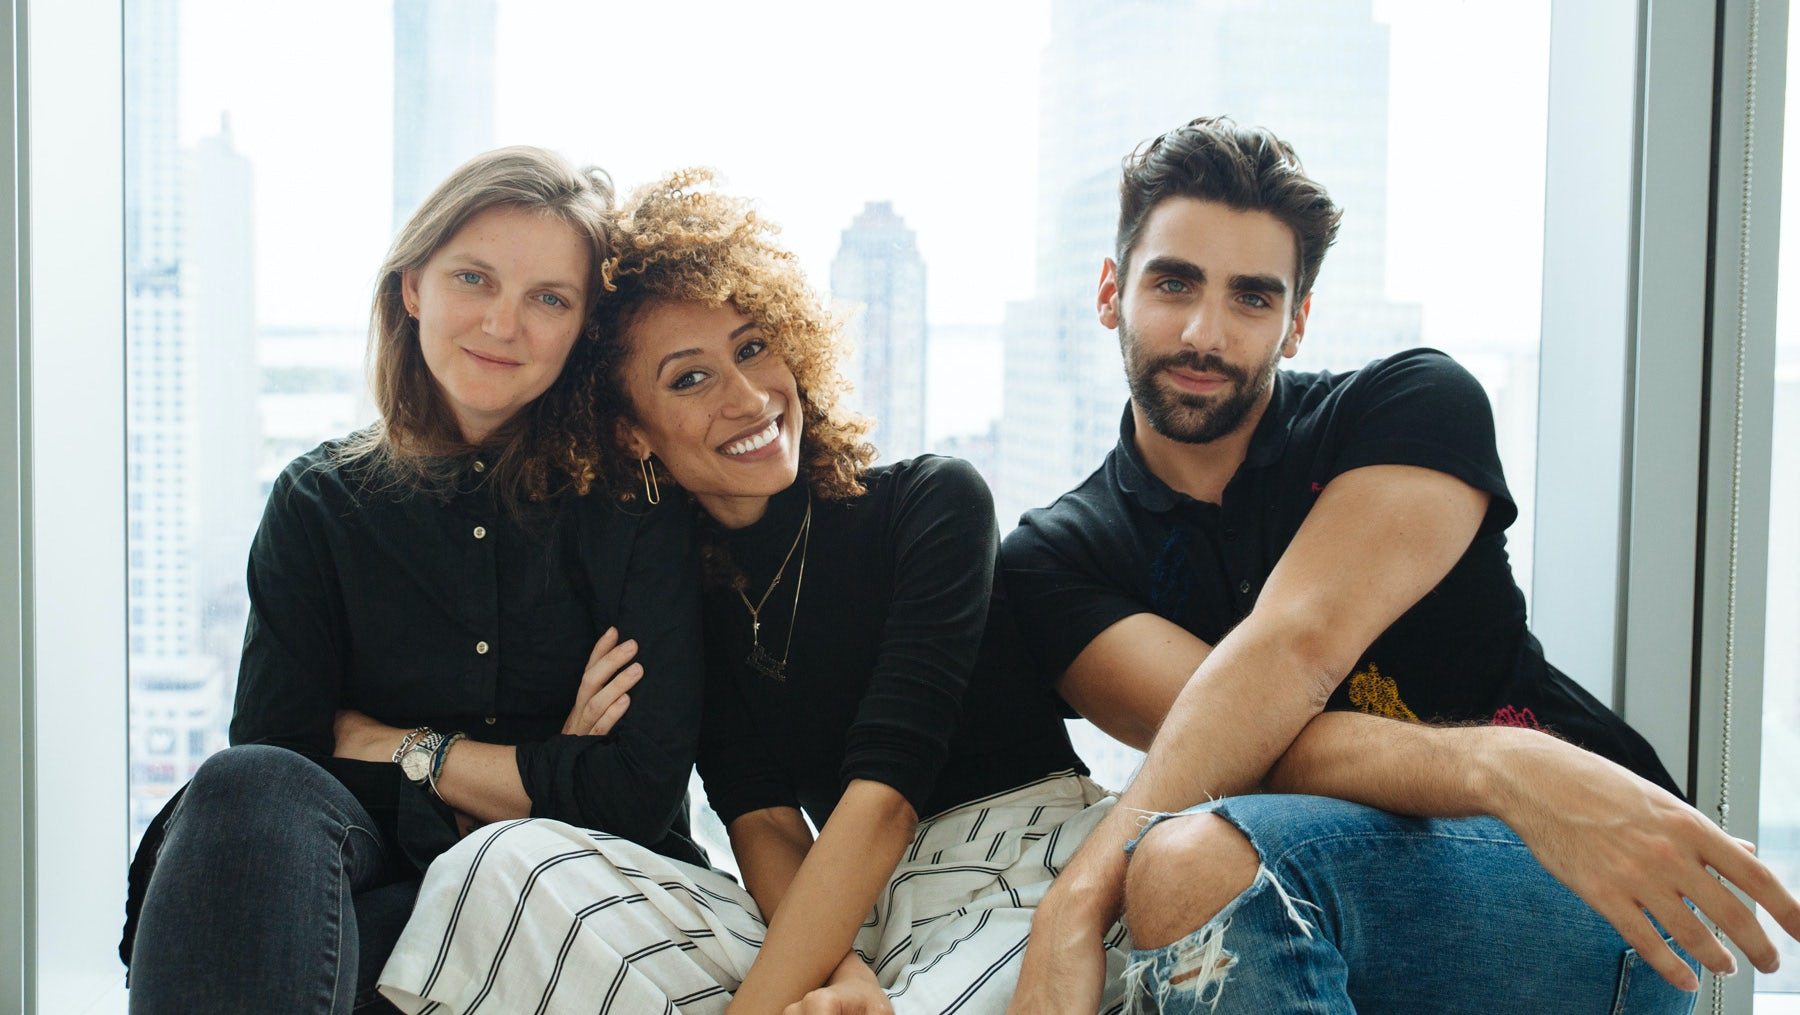 (L-R) Teen Vogue creative director Marie Suter, editor Elaine Welteroth and digital editorial director Phillip Picardi   Photo: Kelly Teacher